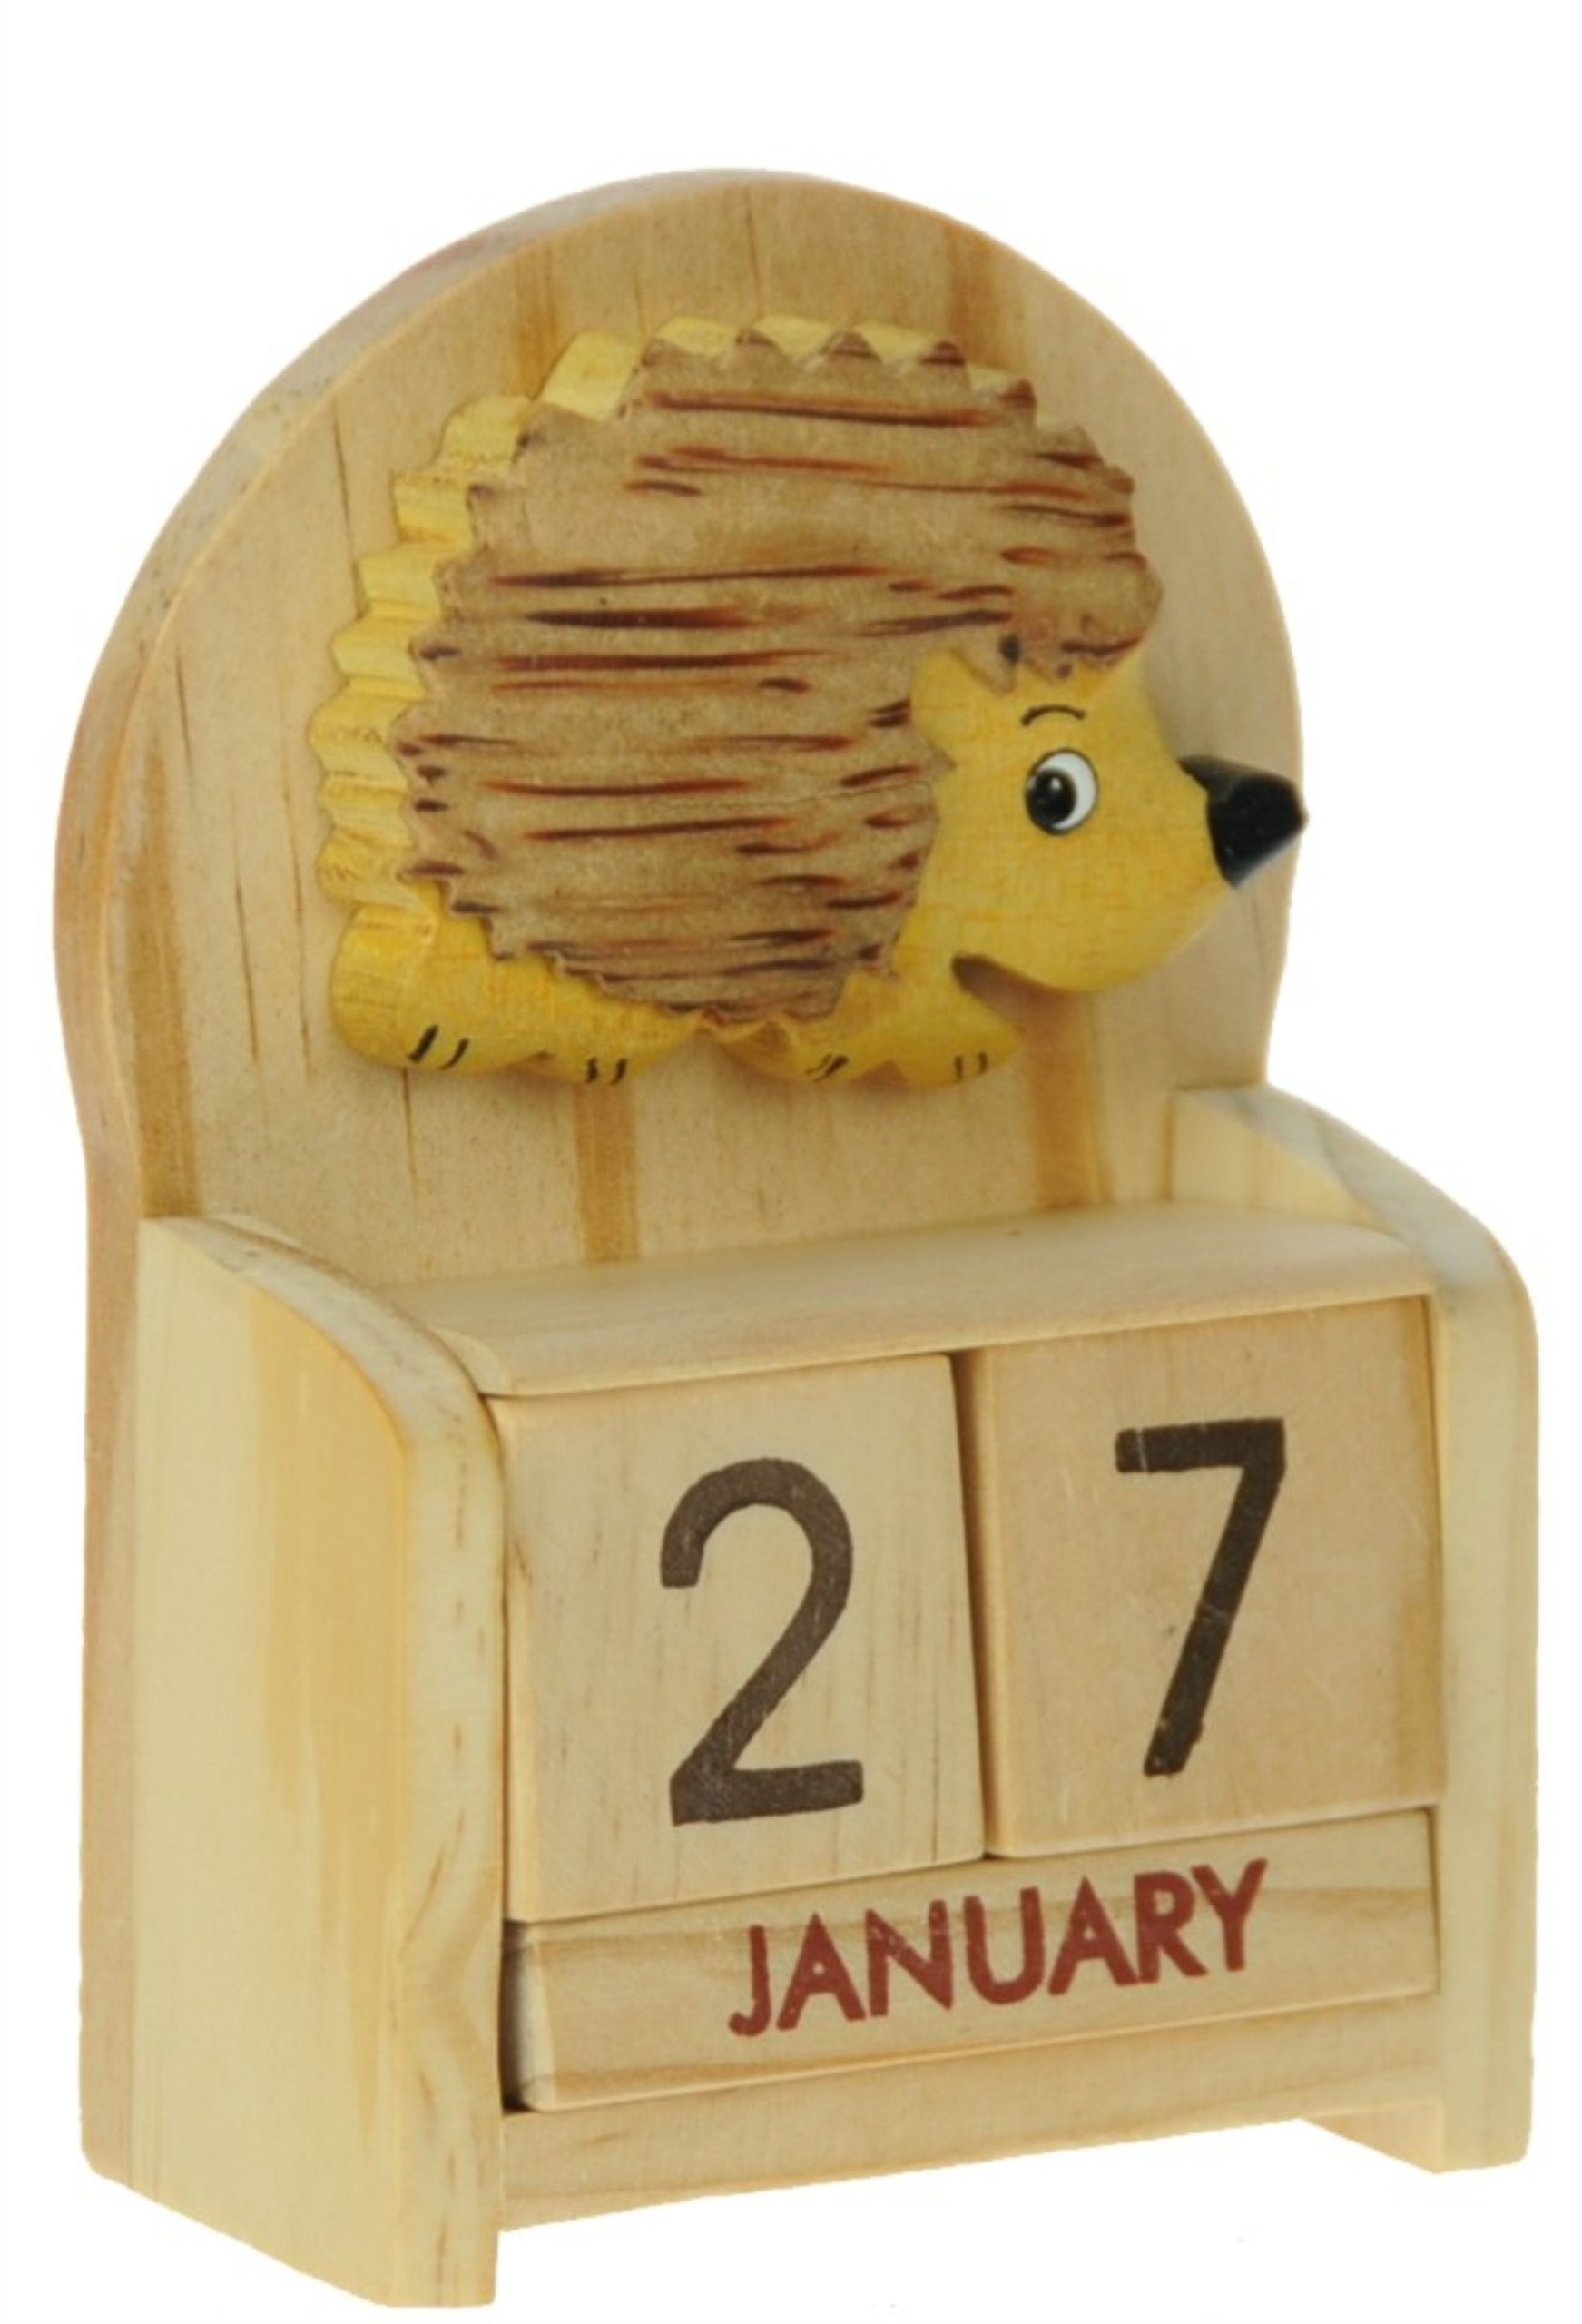 Namesakes Hedgehog Perpetual Calendar Wooden Advent With Date Blocks Novelty Xmas Stocking Filler Gift